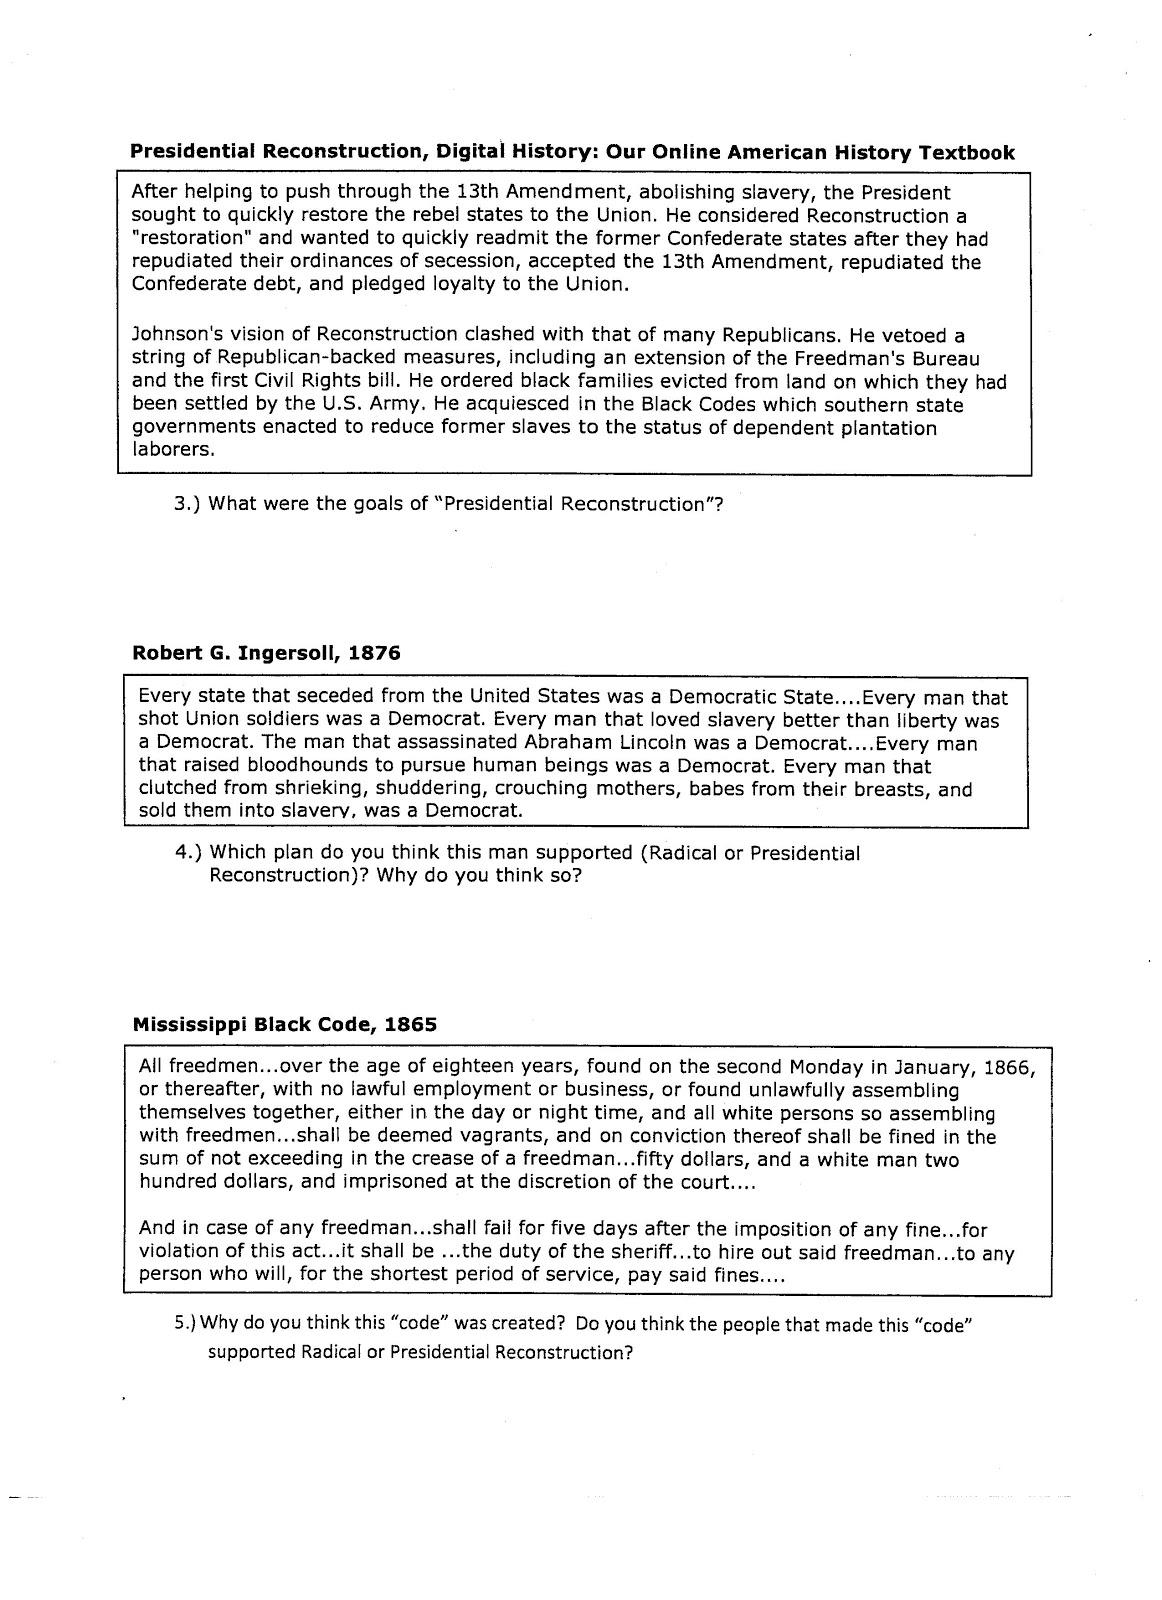 reconstruction era essay essay about paper essay about paper  reconstruction essay sbq essay reconstruction era